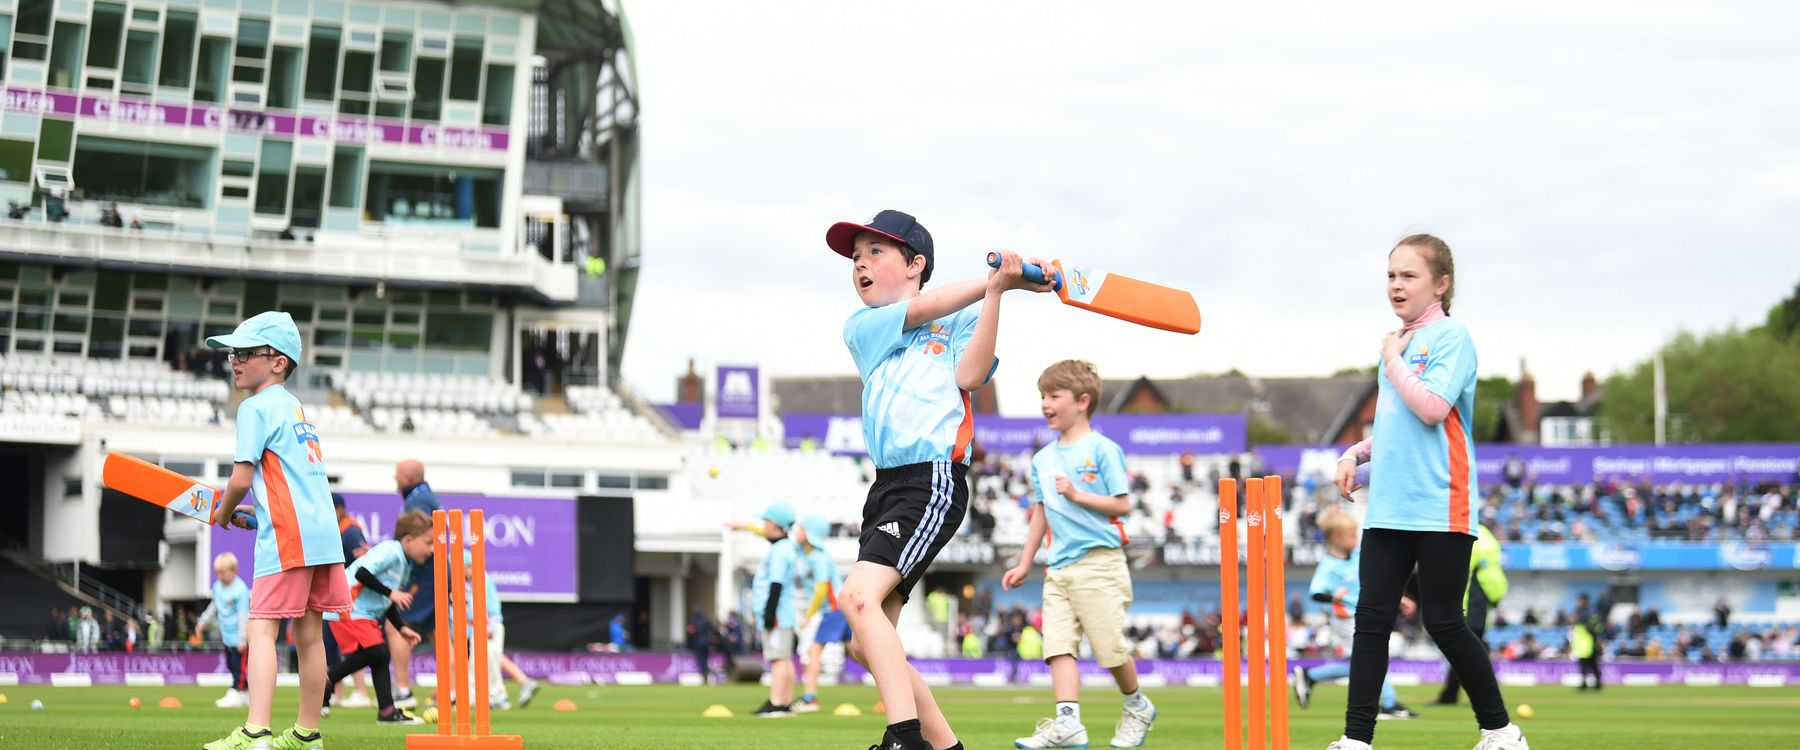 5.3.1 Safeguarding in Cricket